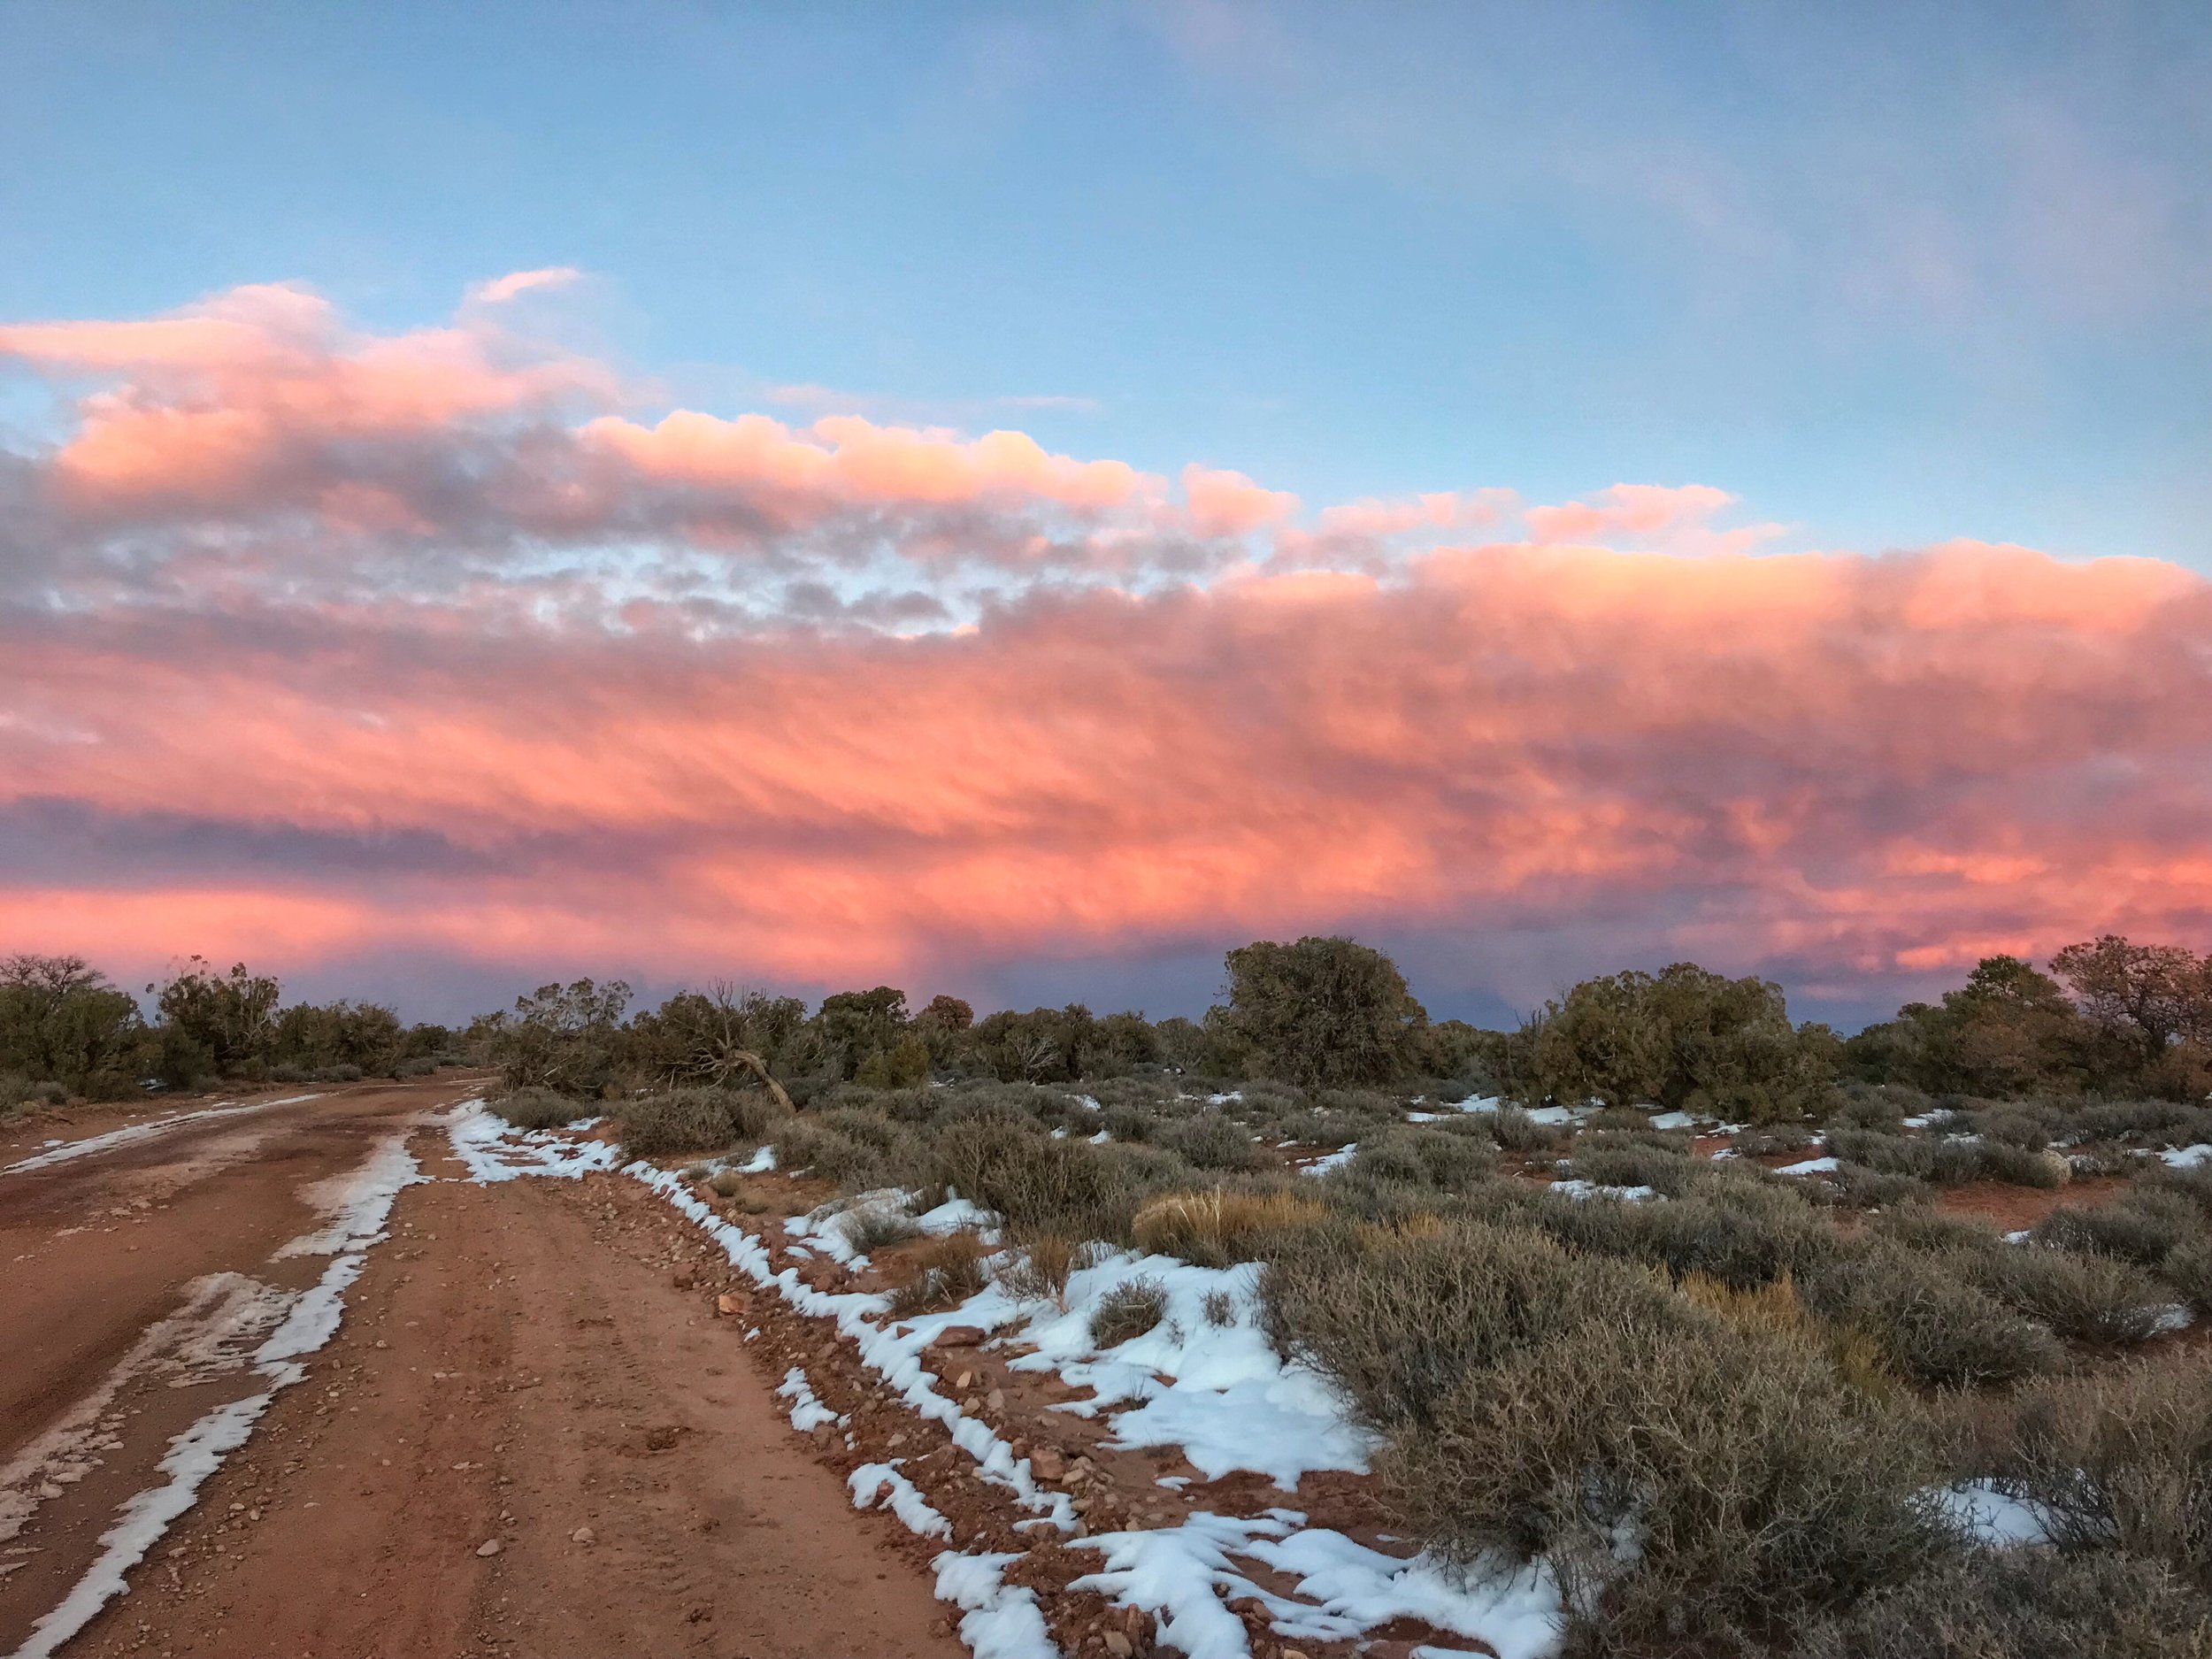 We saw the most incredible sunset from Horsethief Trail right outside Canyonlands.